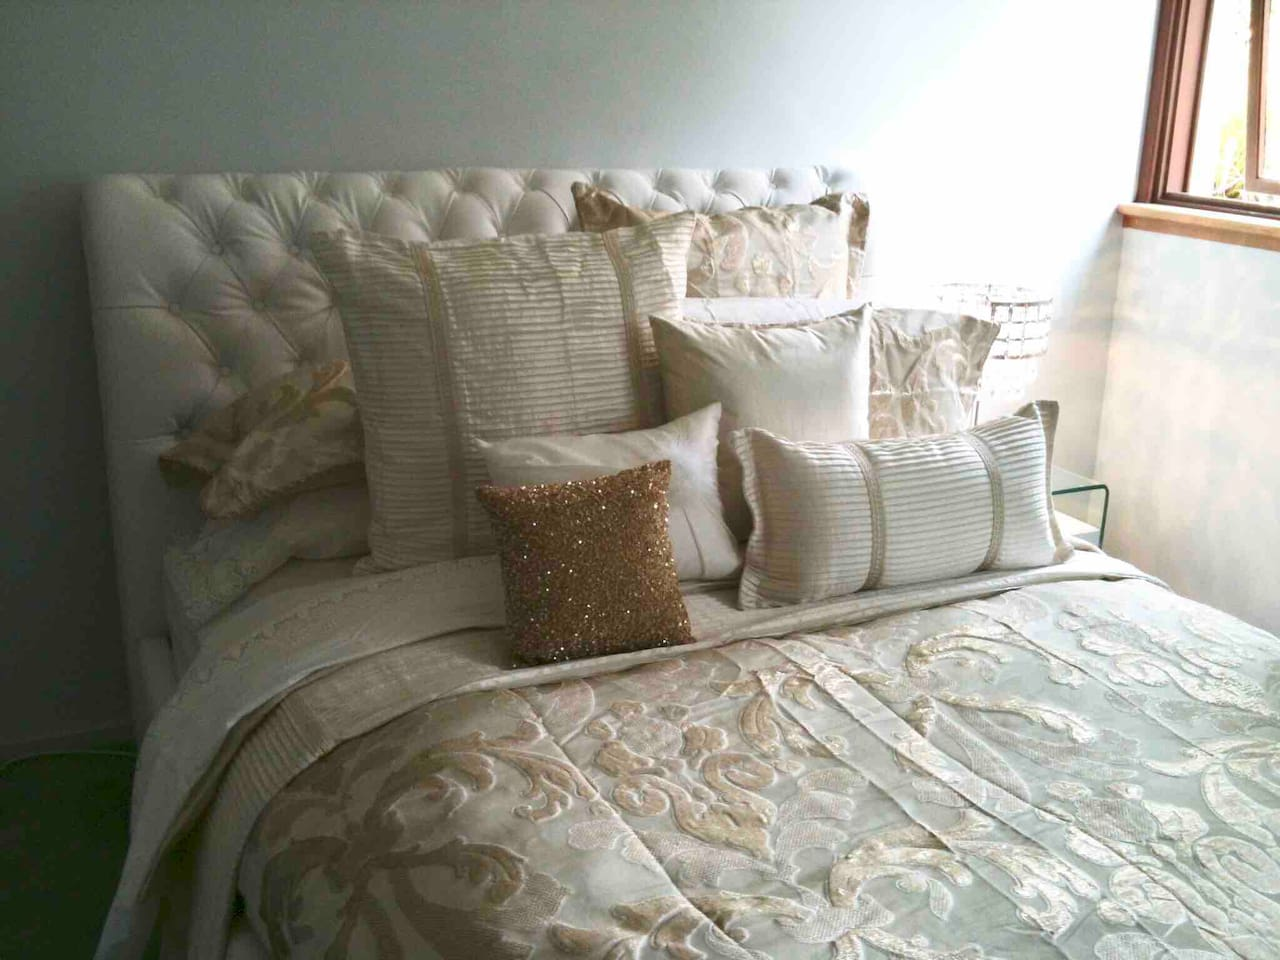 Your bed: elegant, comfy, with a luxurious 100% down doona